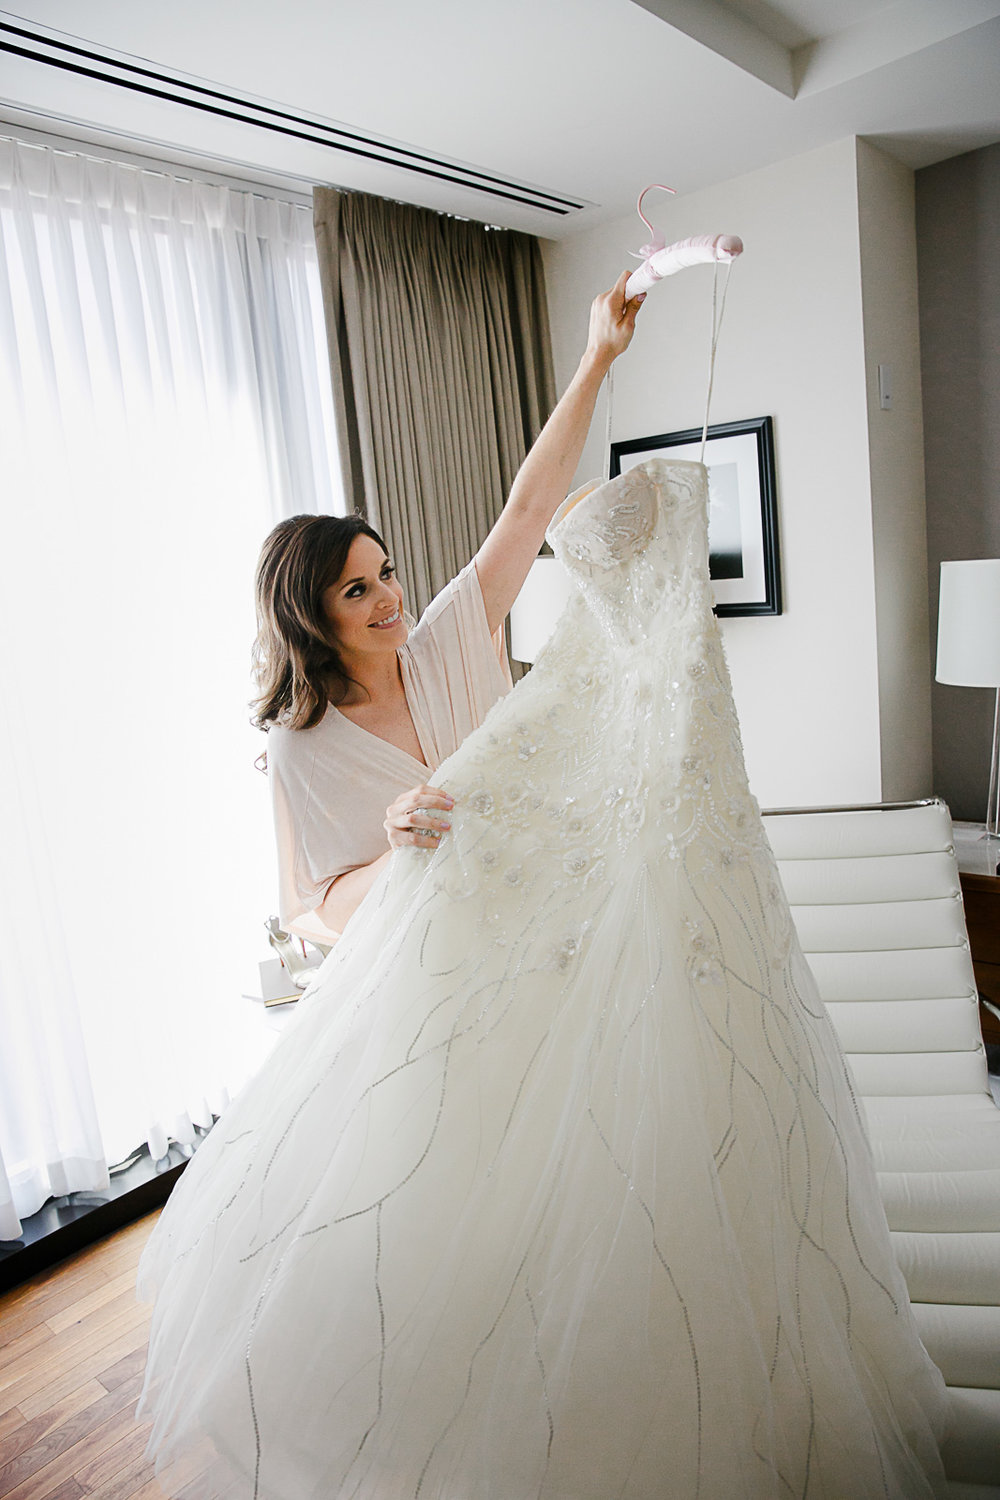 Sydney holds her designer bridal gown before dressing for her wedding at the Langham Hotel's bridal suite in Chicago.